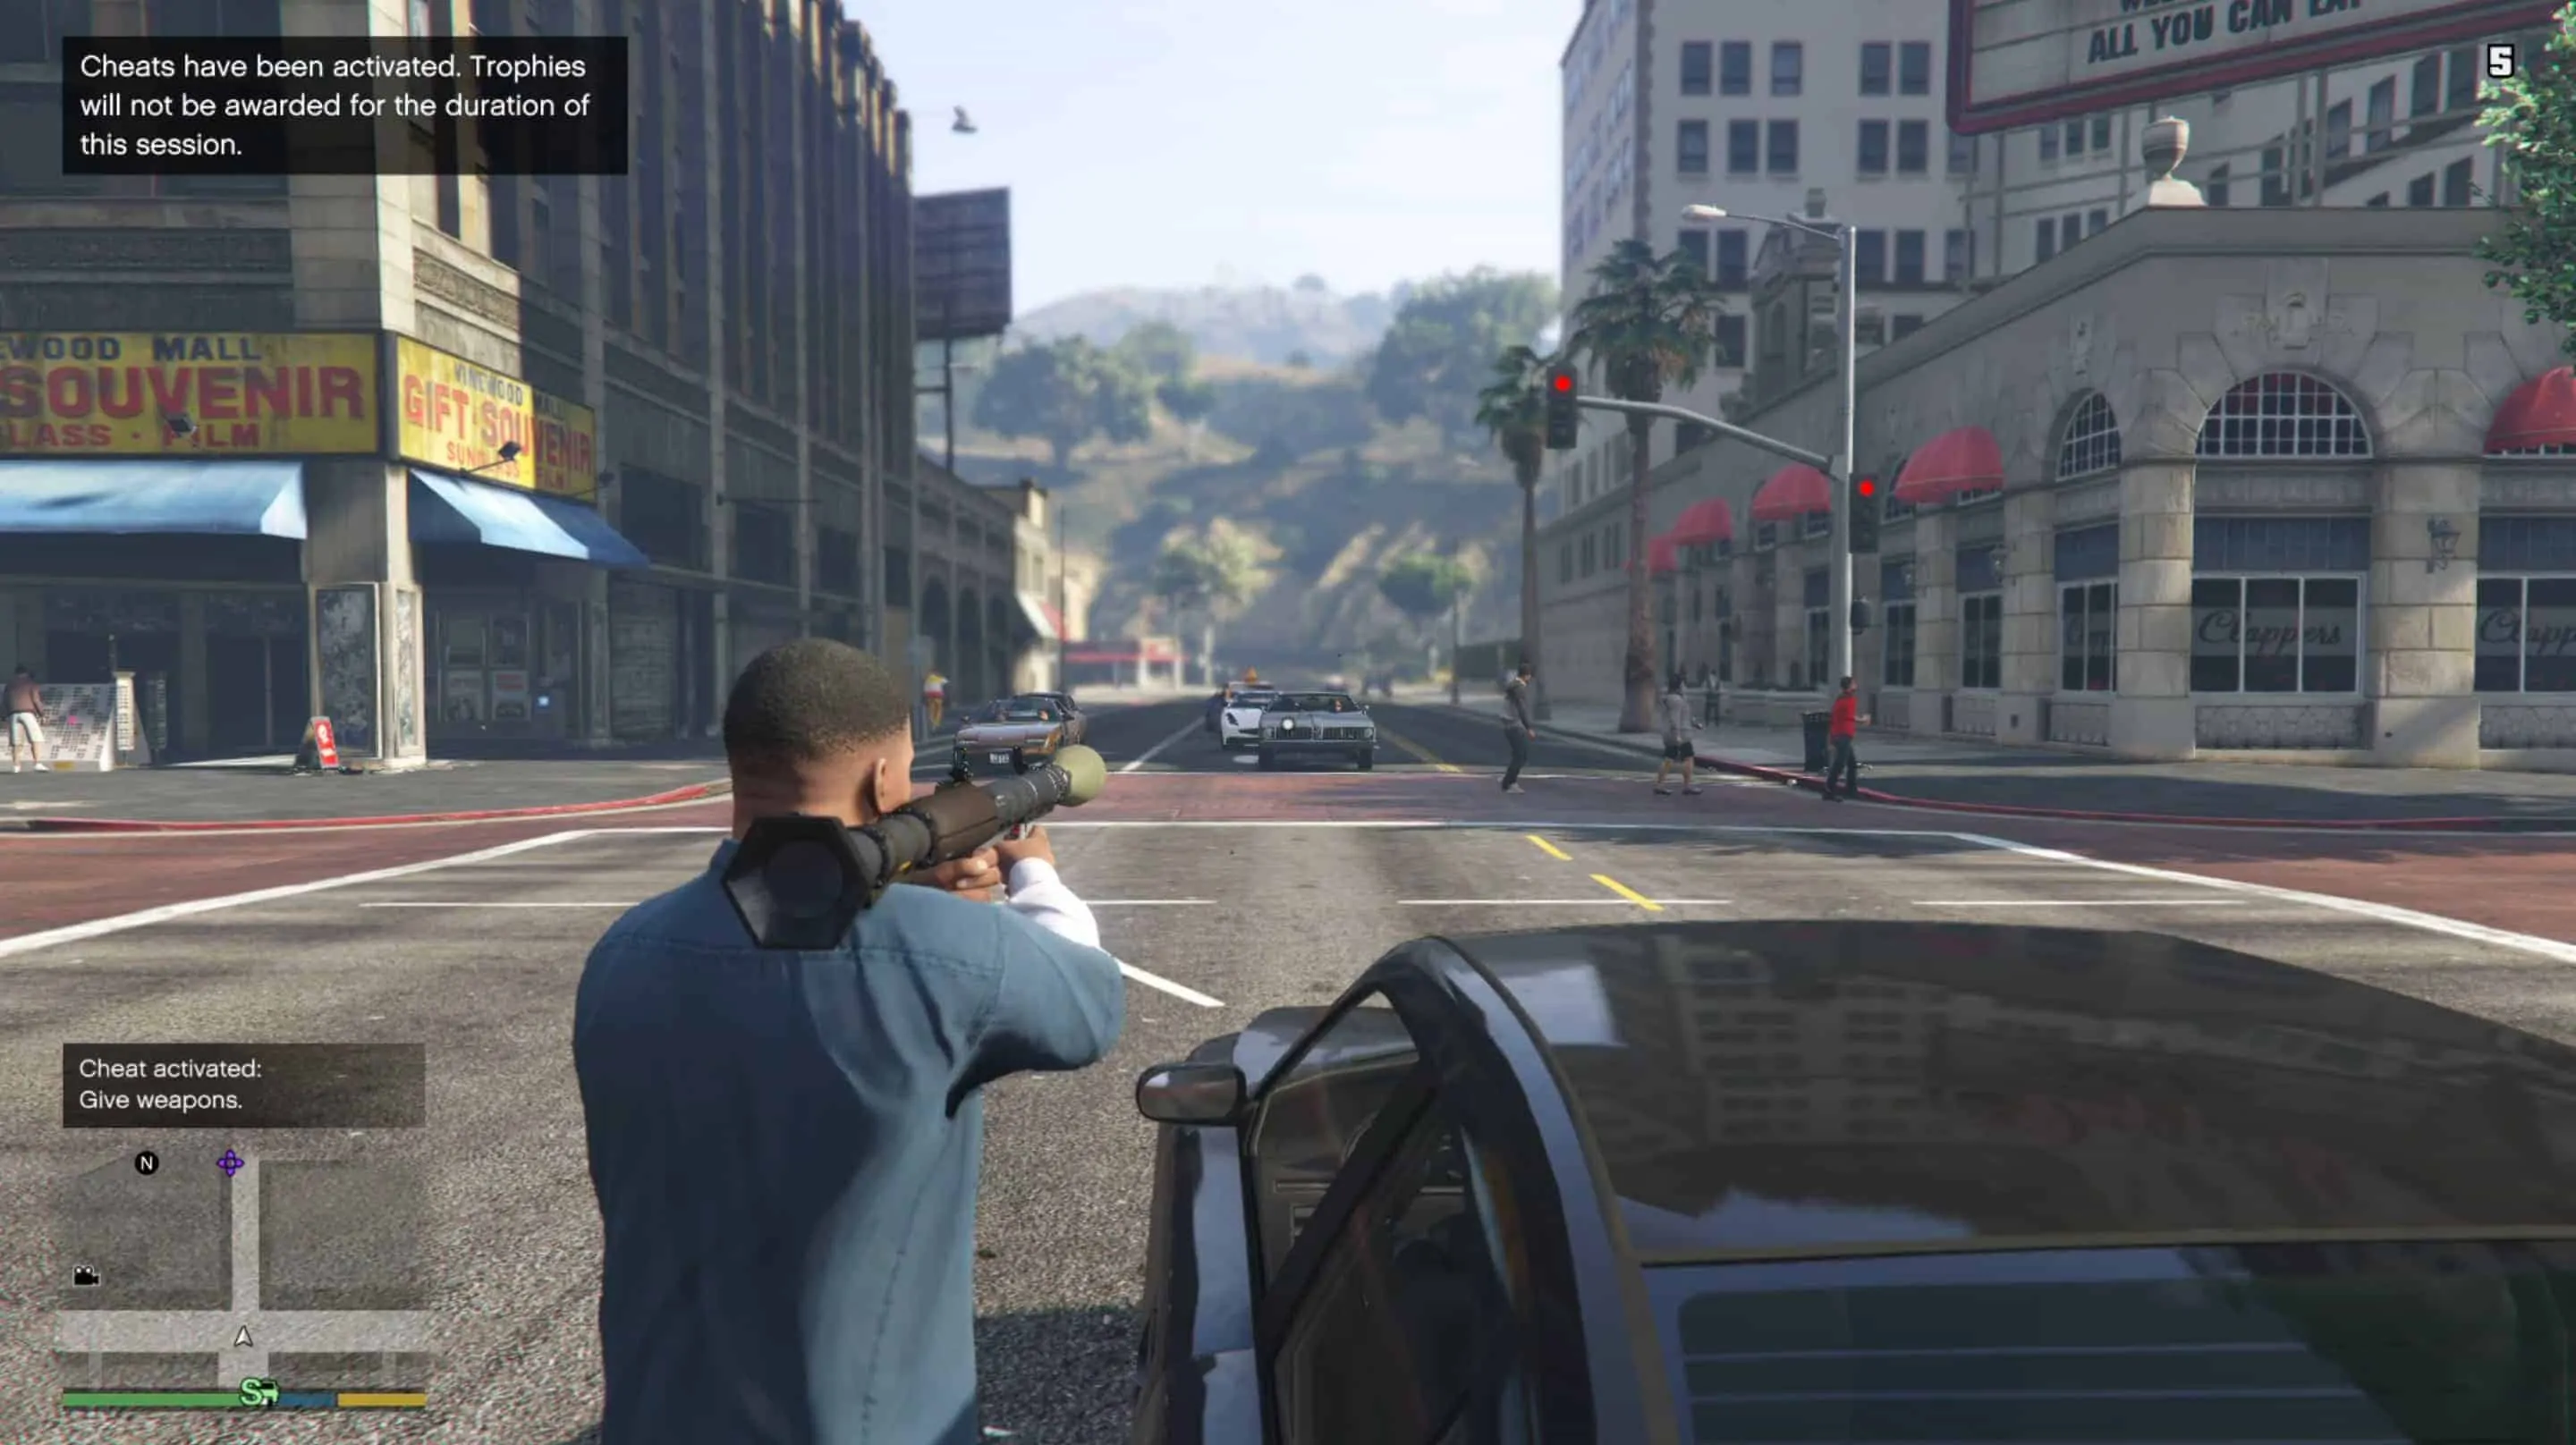 GTA 5 Cheats On PC: Full List of Cheat Codes for PC - GTA BOOM